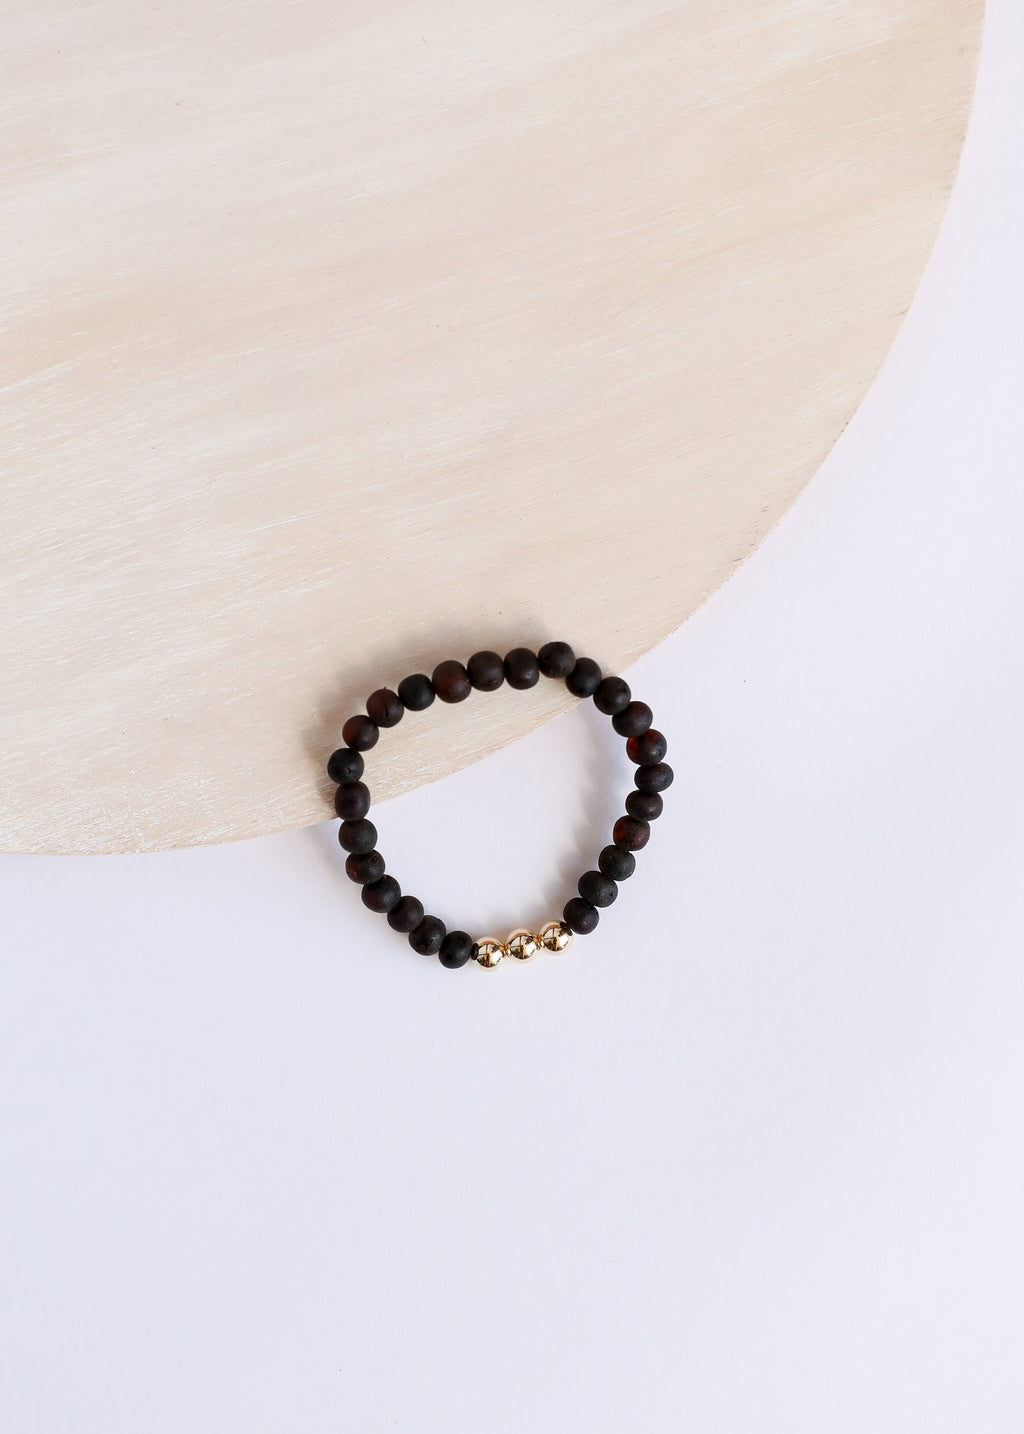 Raw Black Amber + 14k Gold || Adult Bracelet